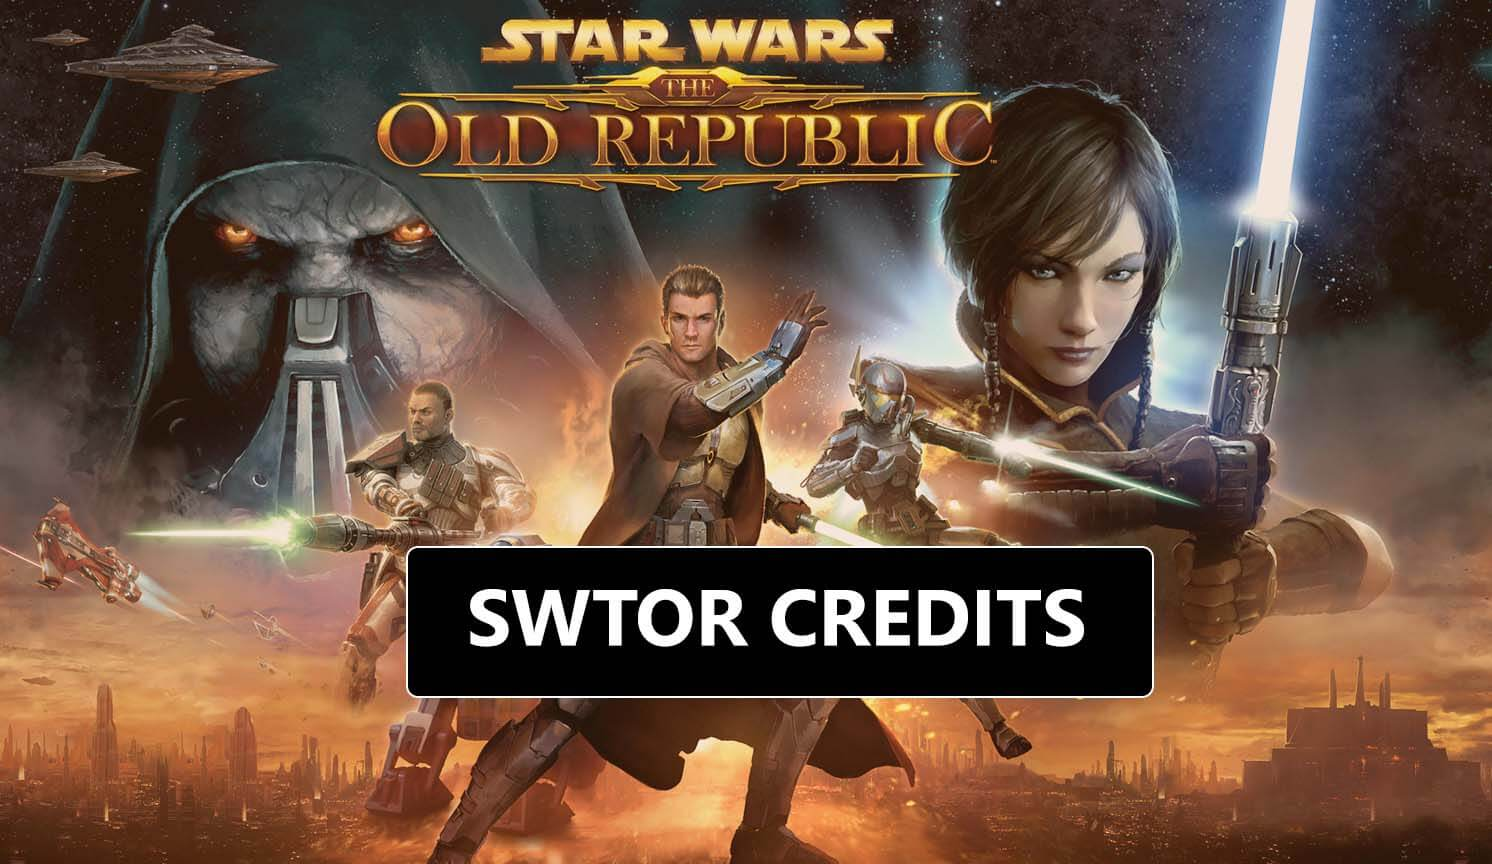 Buy Swtor Credits in Cheapest Price